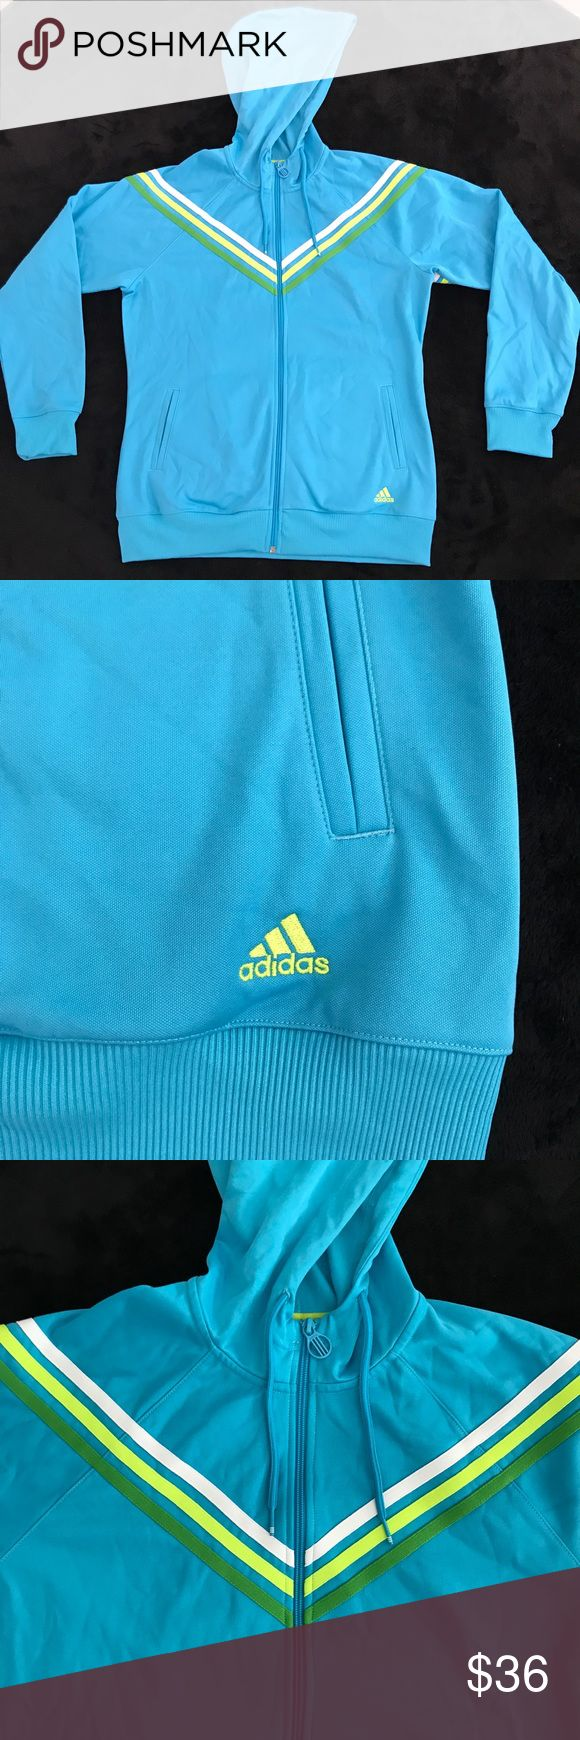 Adidas Sky Blue Striped Zip Up Hoodie This adidas hoodie is in PERFECT condition! This was given to me as a gift and I never wore it because it was the wrong size for me. The logos, embroidered stripes. Zippers, everything is like new condition. Two front pockets. Super soft interior. Unique zipper. White, Yellow, and green stripes. 100% Polyester.⭐️Smoke-free and pet-free home. No trades.  Will work with reasonable offers! Will answer any questions. 1-2 day shipping.⭐️ adidas Jackets…